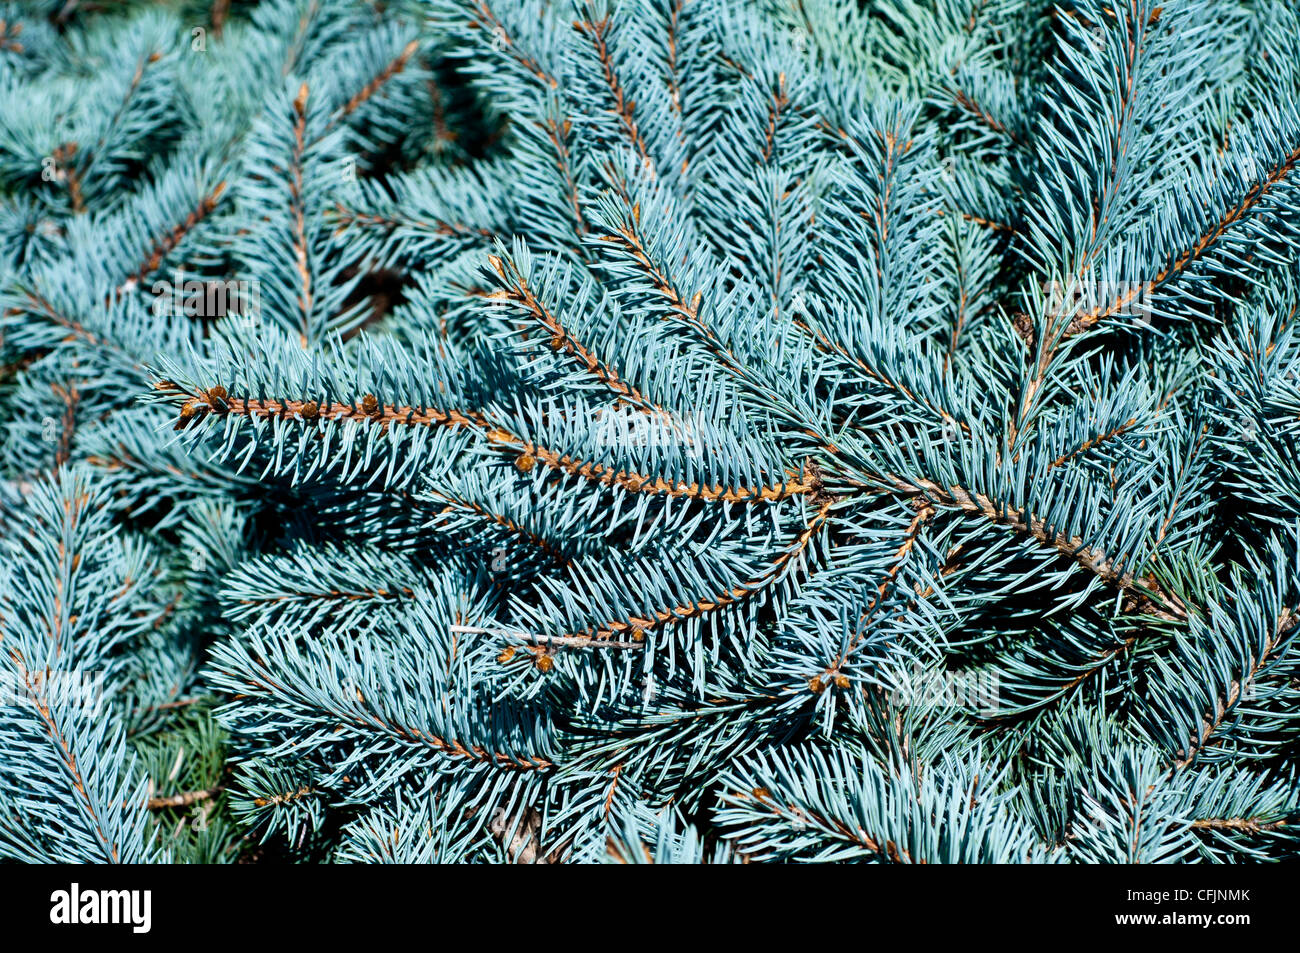 Blue conifers of Colorado Spruce, Picea Pungens var Procumbens, Pinaceae, North America - Stock Image